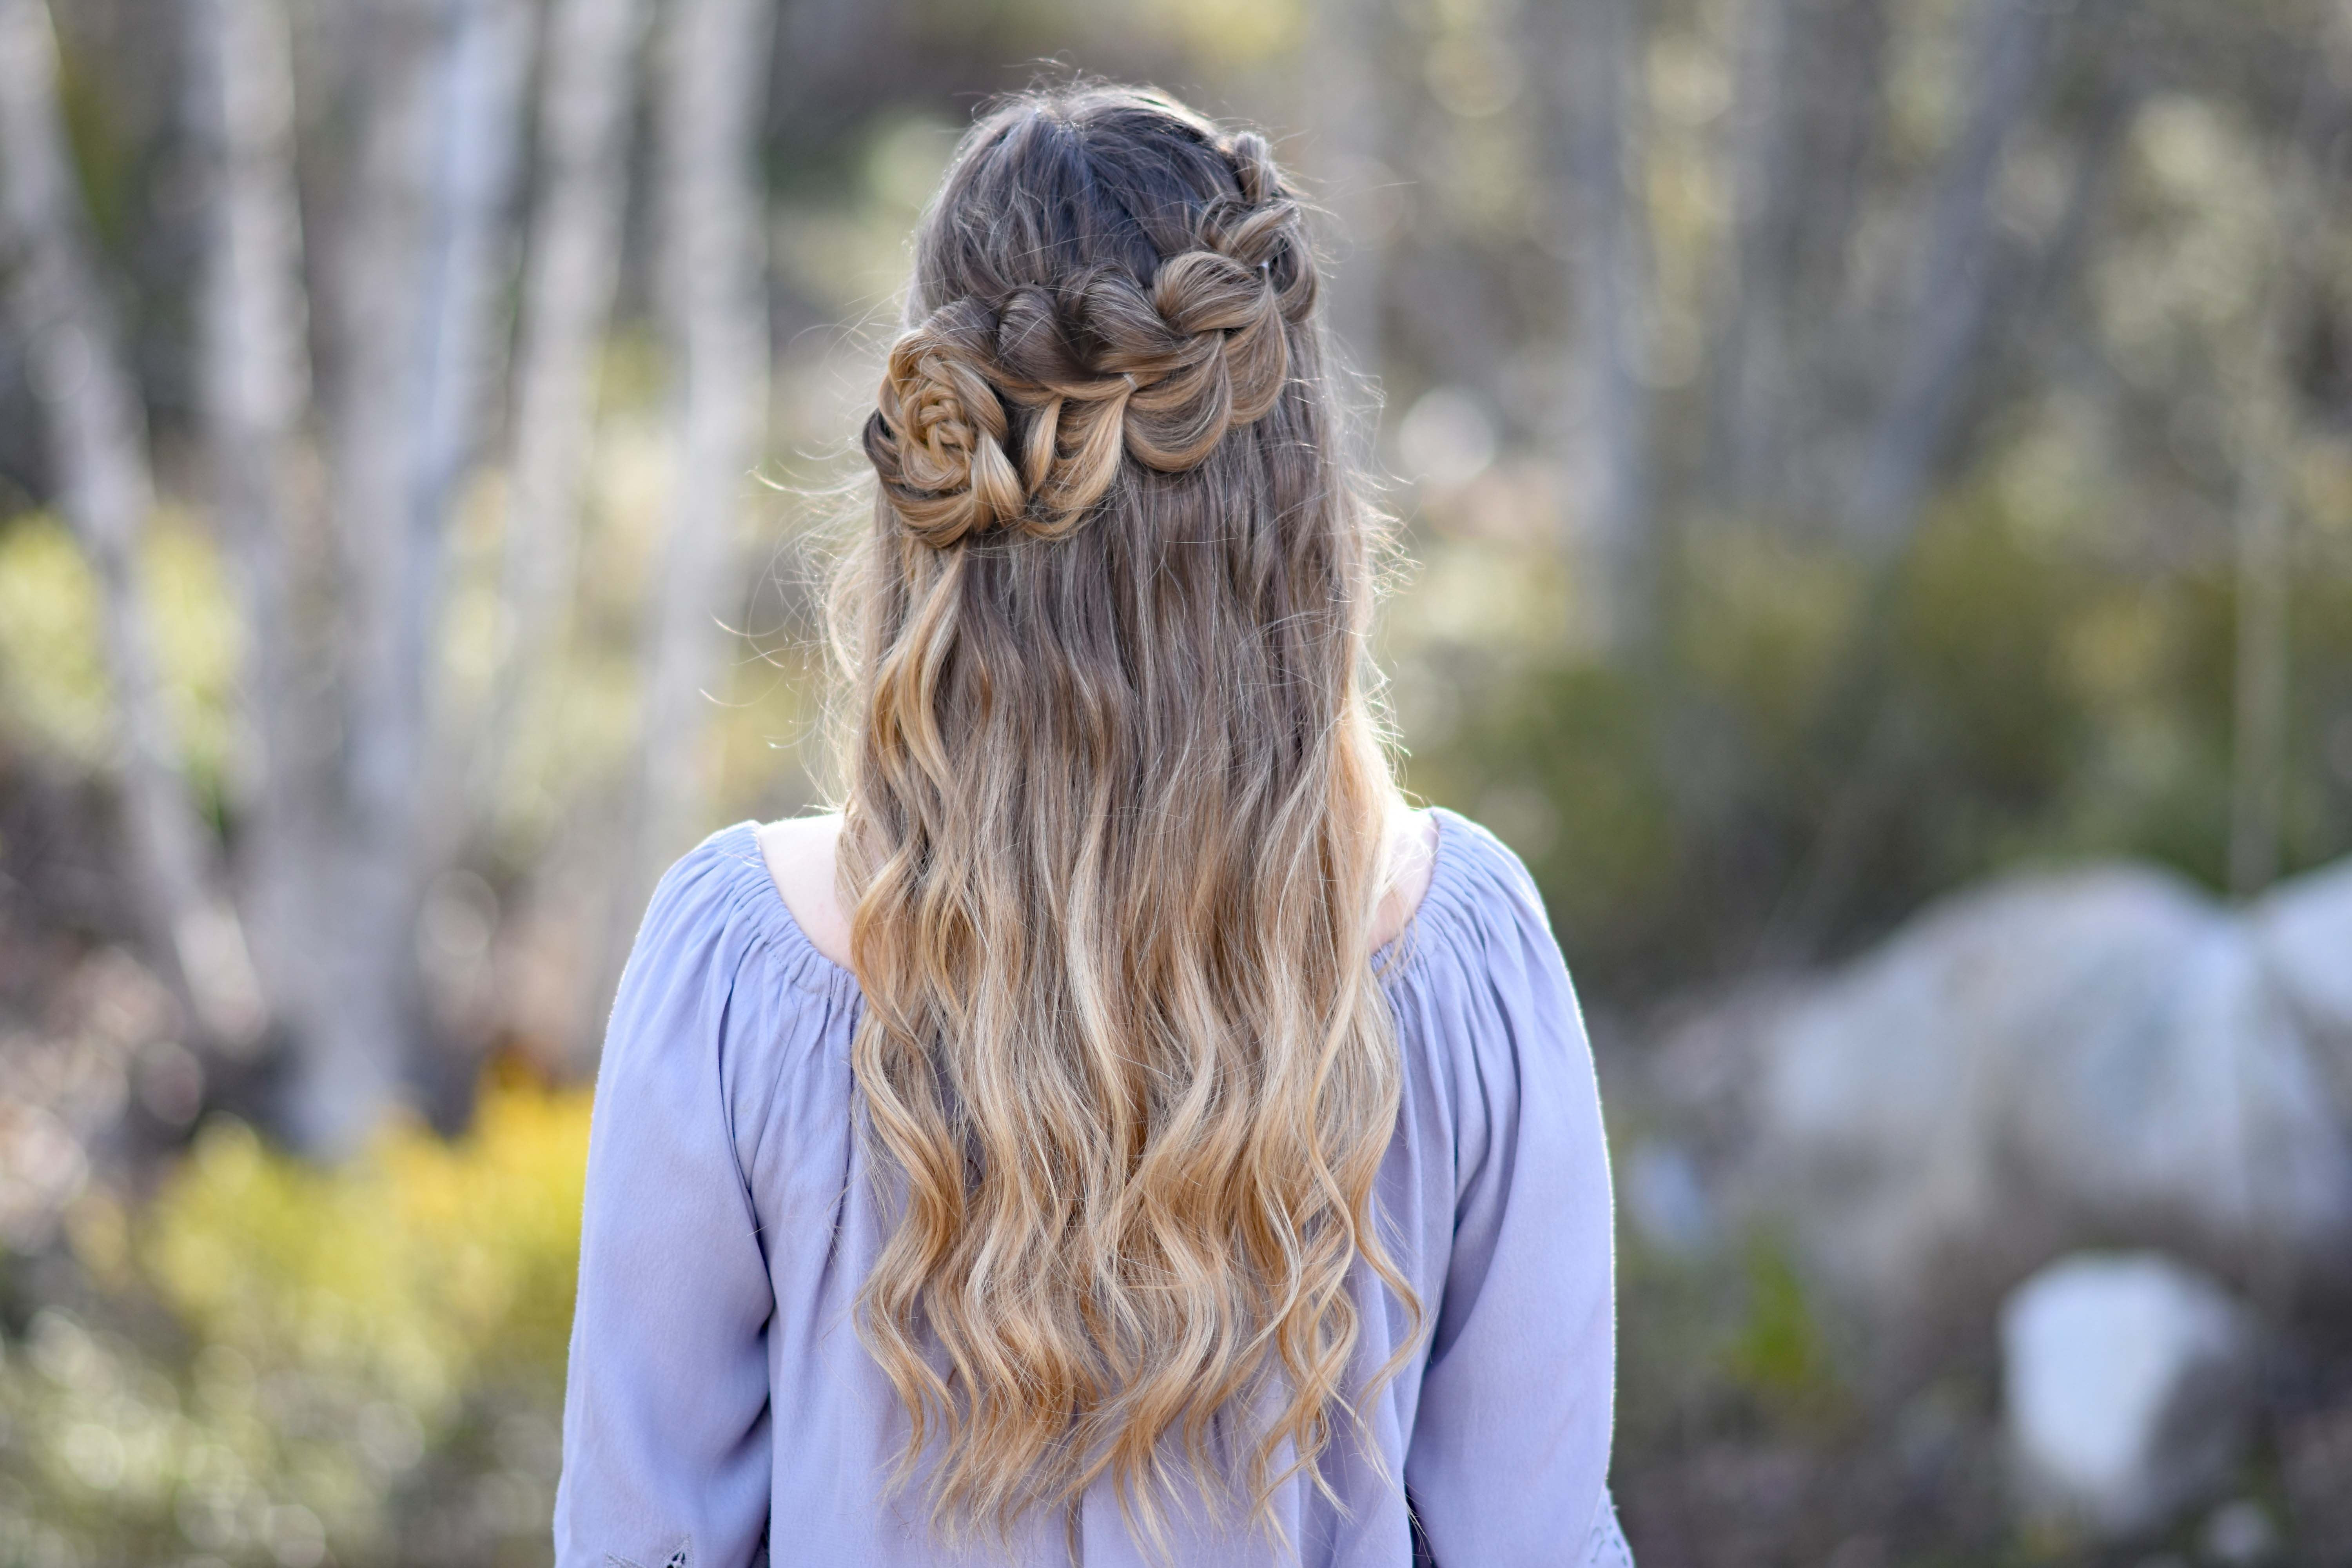 Cute Girls Hairstyles Throughout Famous Braided Gymnastics Hairstyles (View 7 of 15)